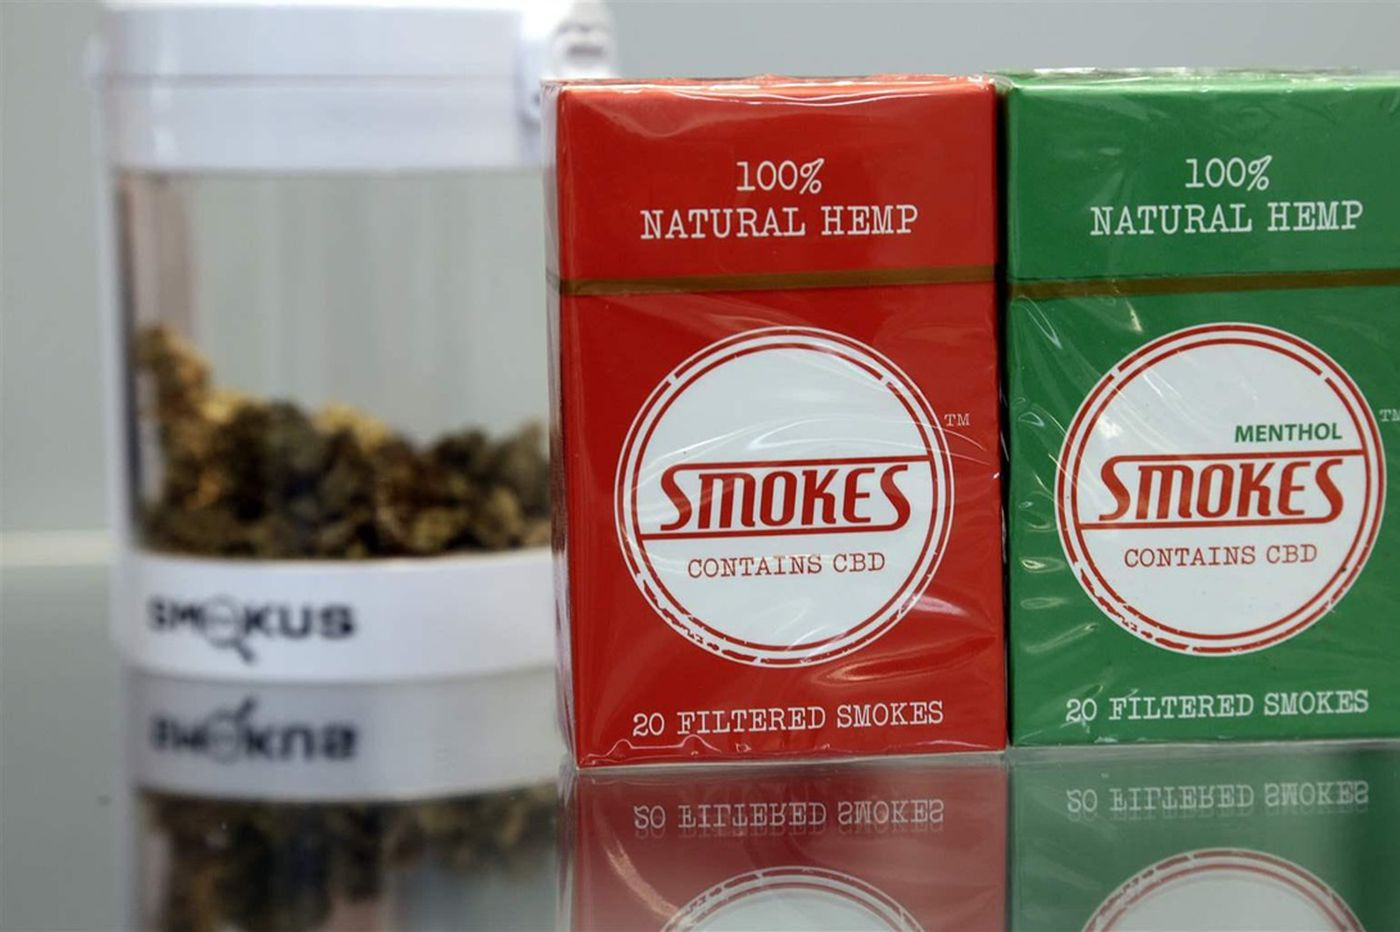 It looks like weed, smells like weed, but is it weed? Some states crack down on smokable hemp